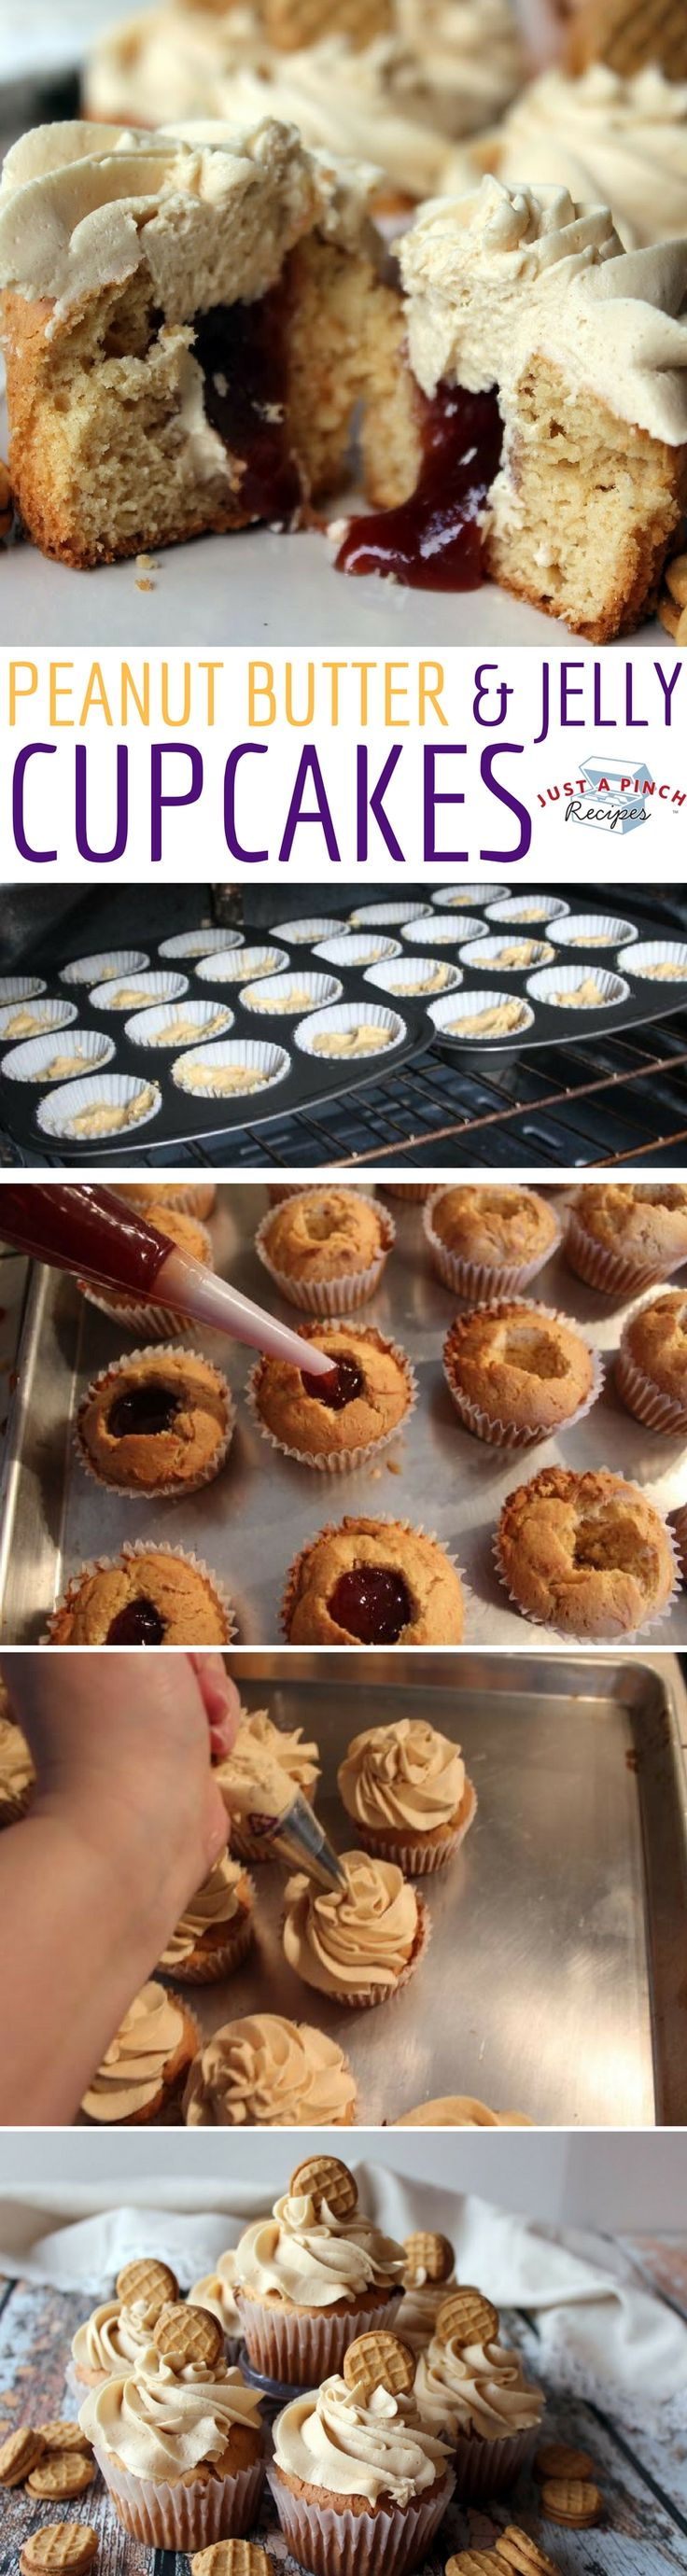 If you and your family are peanut butter & jelly fans, you will love these peanut butter and jelly cupcakes!!!